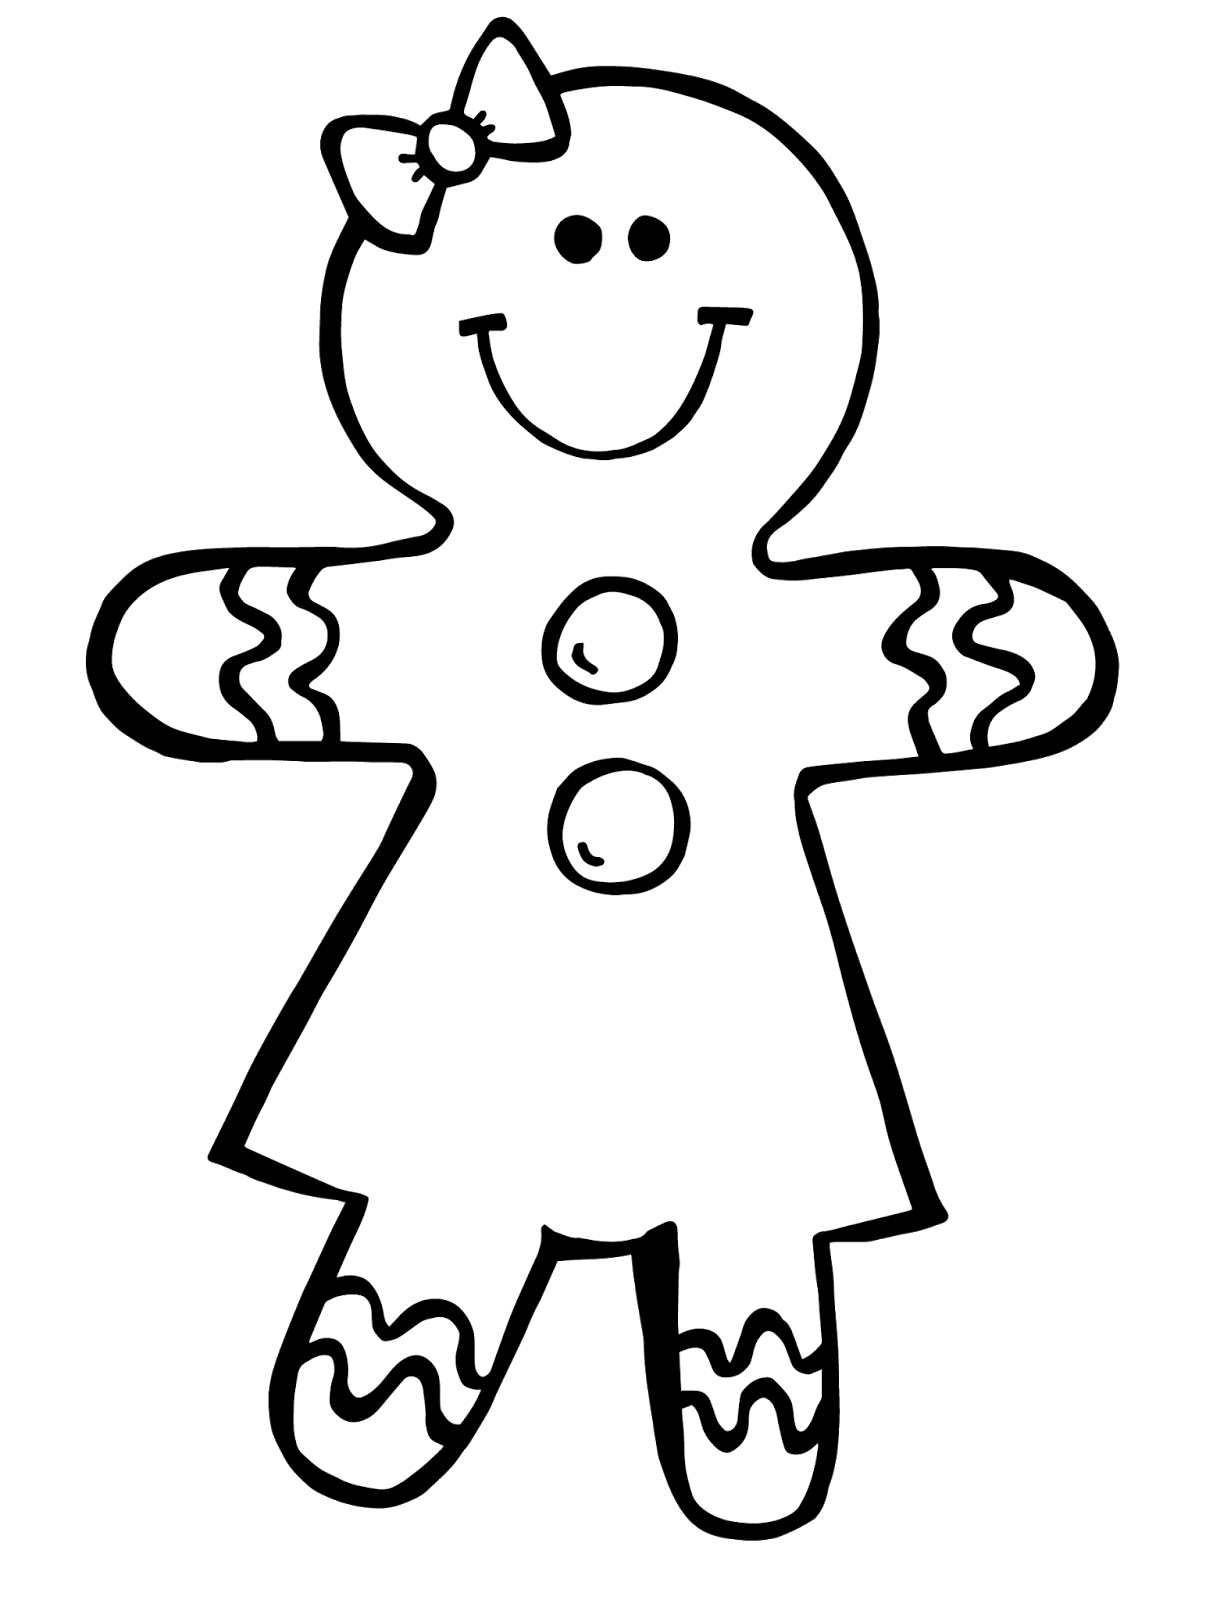 Gingerbread Man Black And White Clipart - Clipart Kid